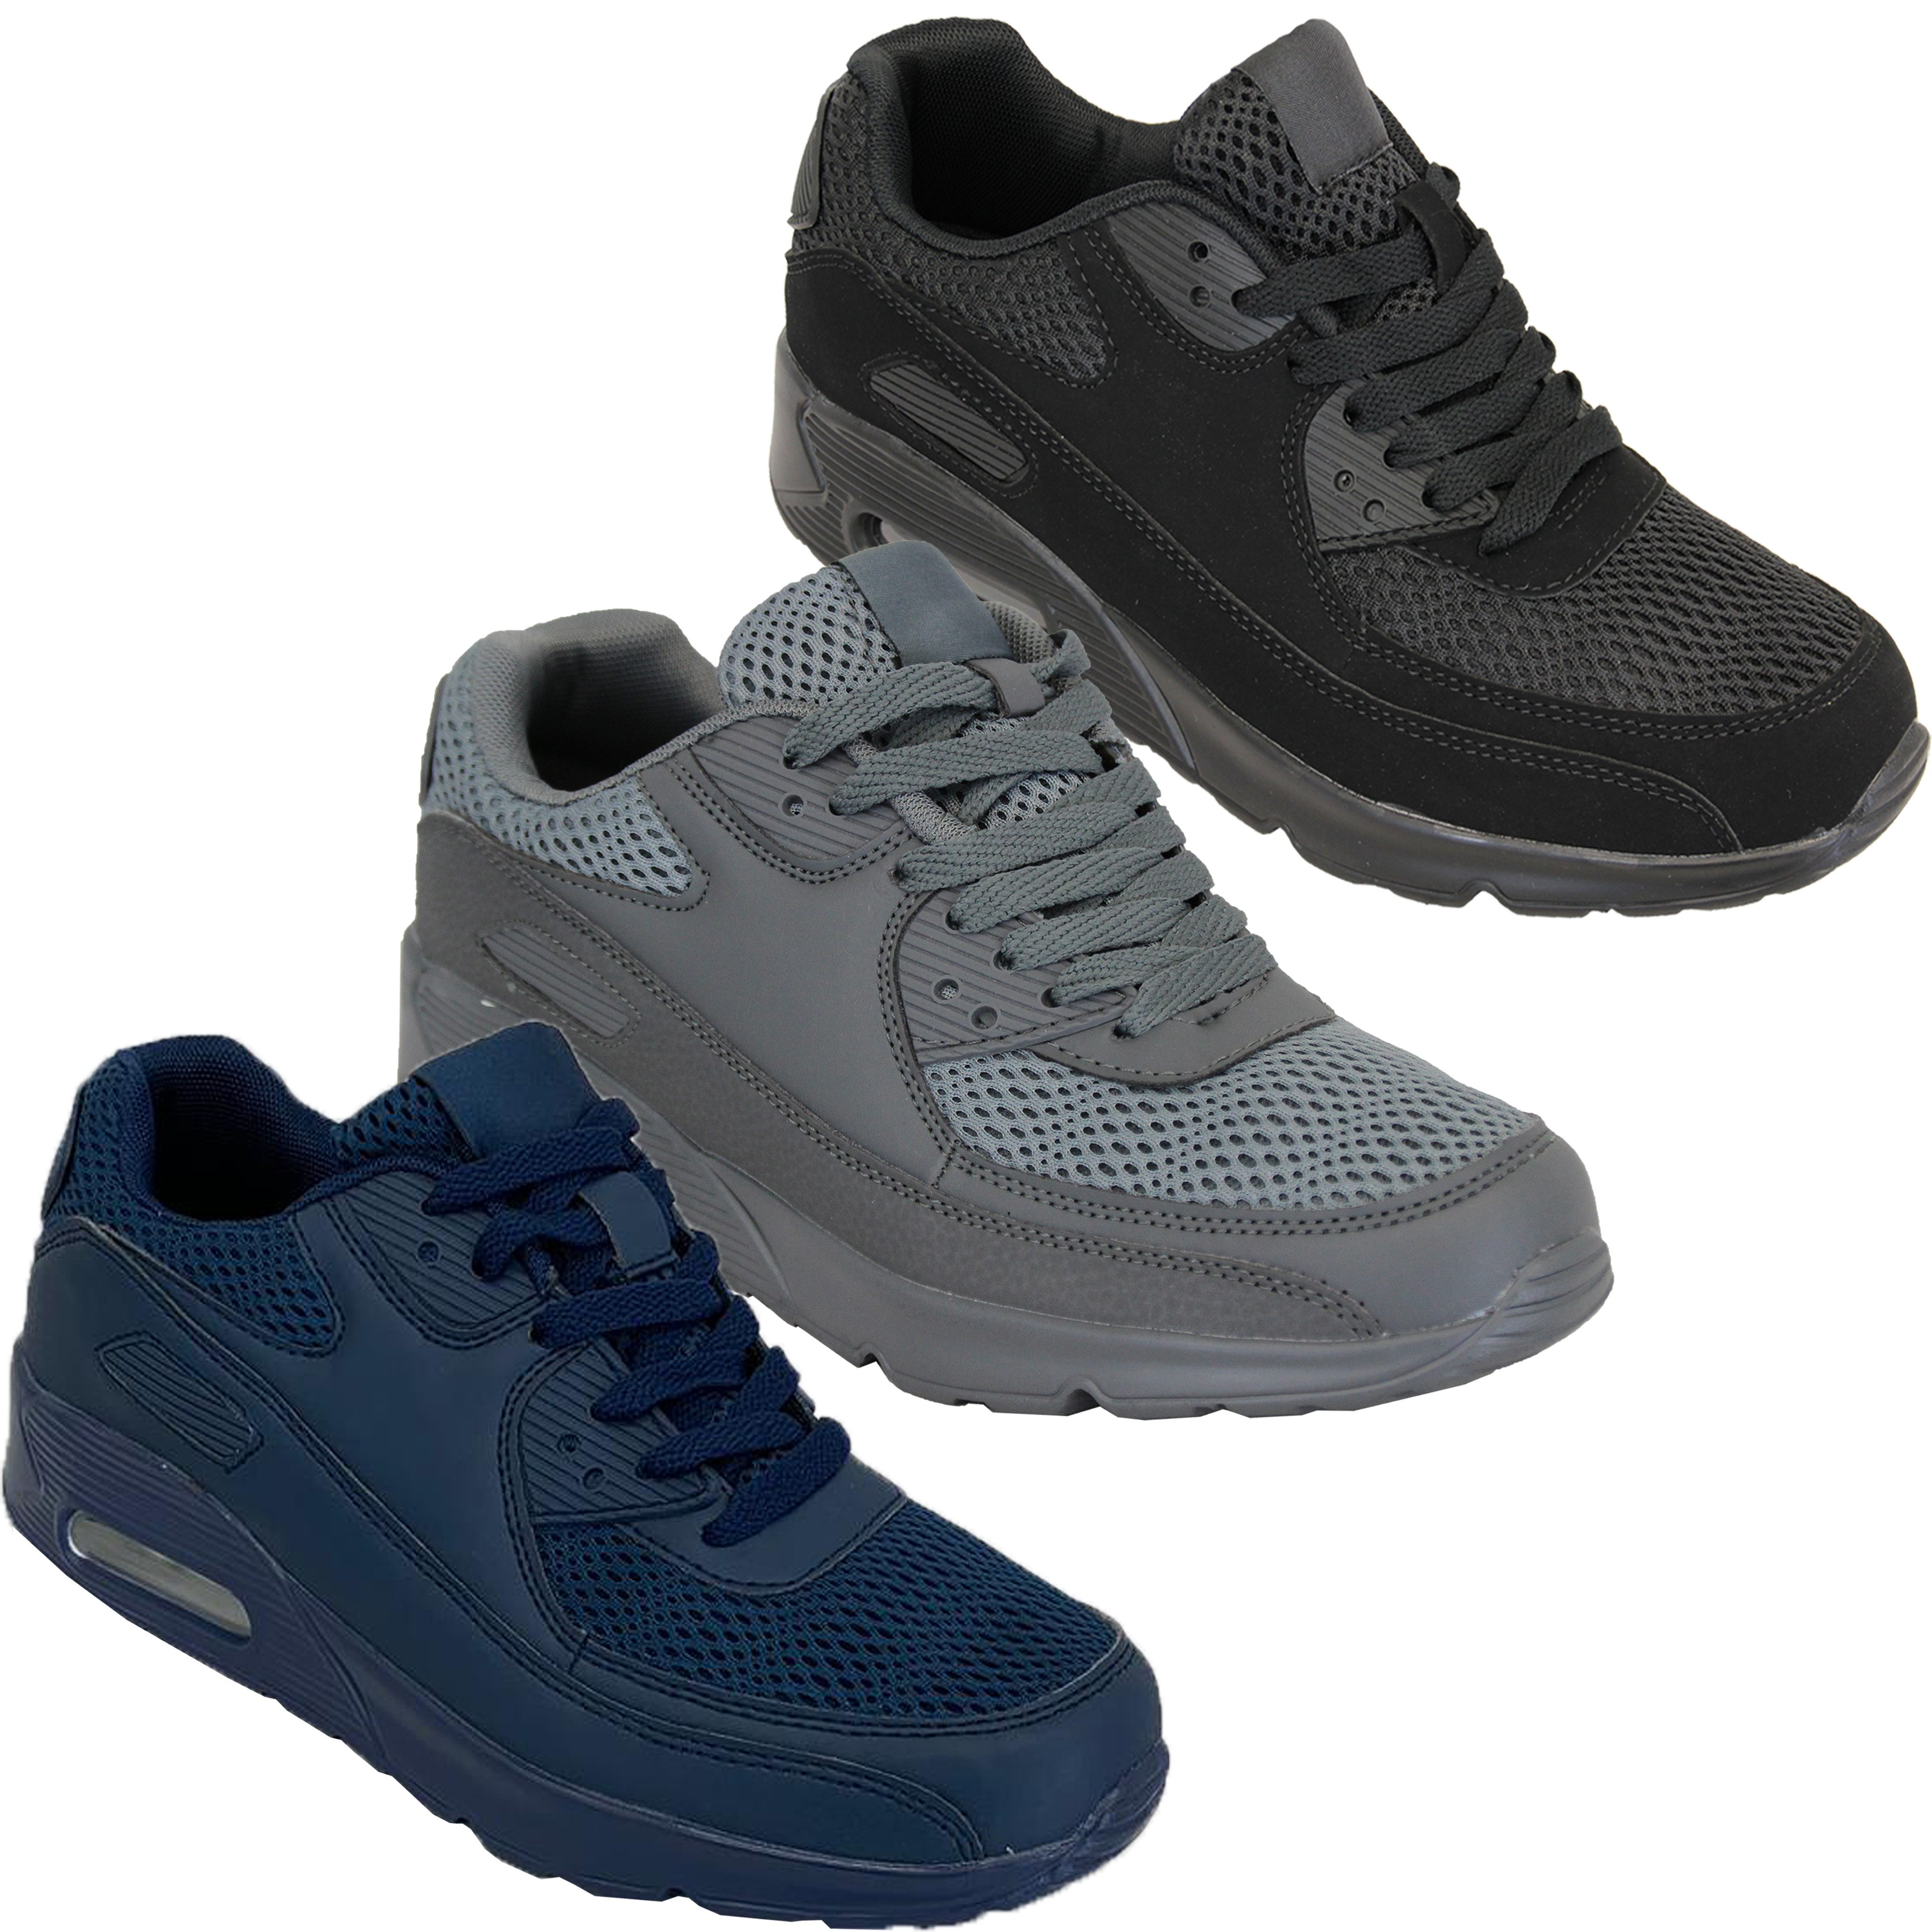 Mens-Bubble-Trainers-Lace-Up-Running-Shoes-Mesh-Jogging-Sports-Gym-Casual-New thumbnail 5